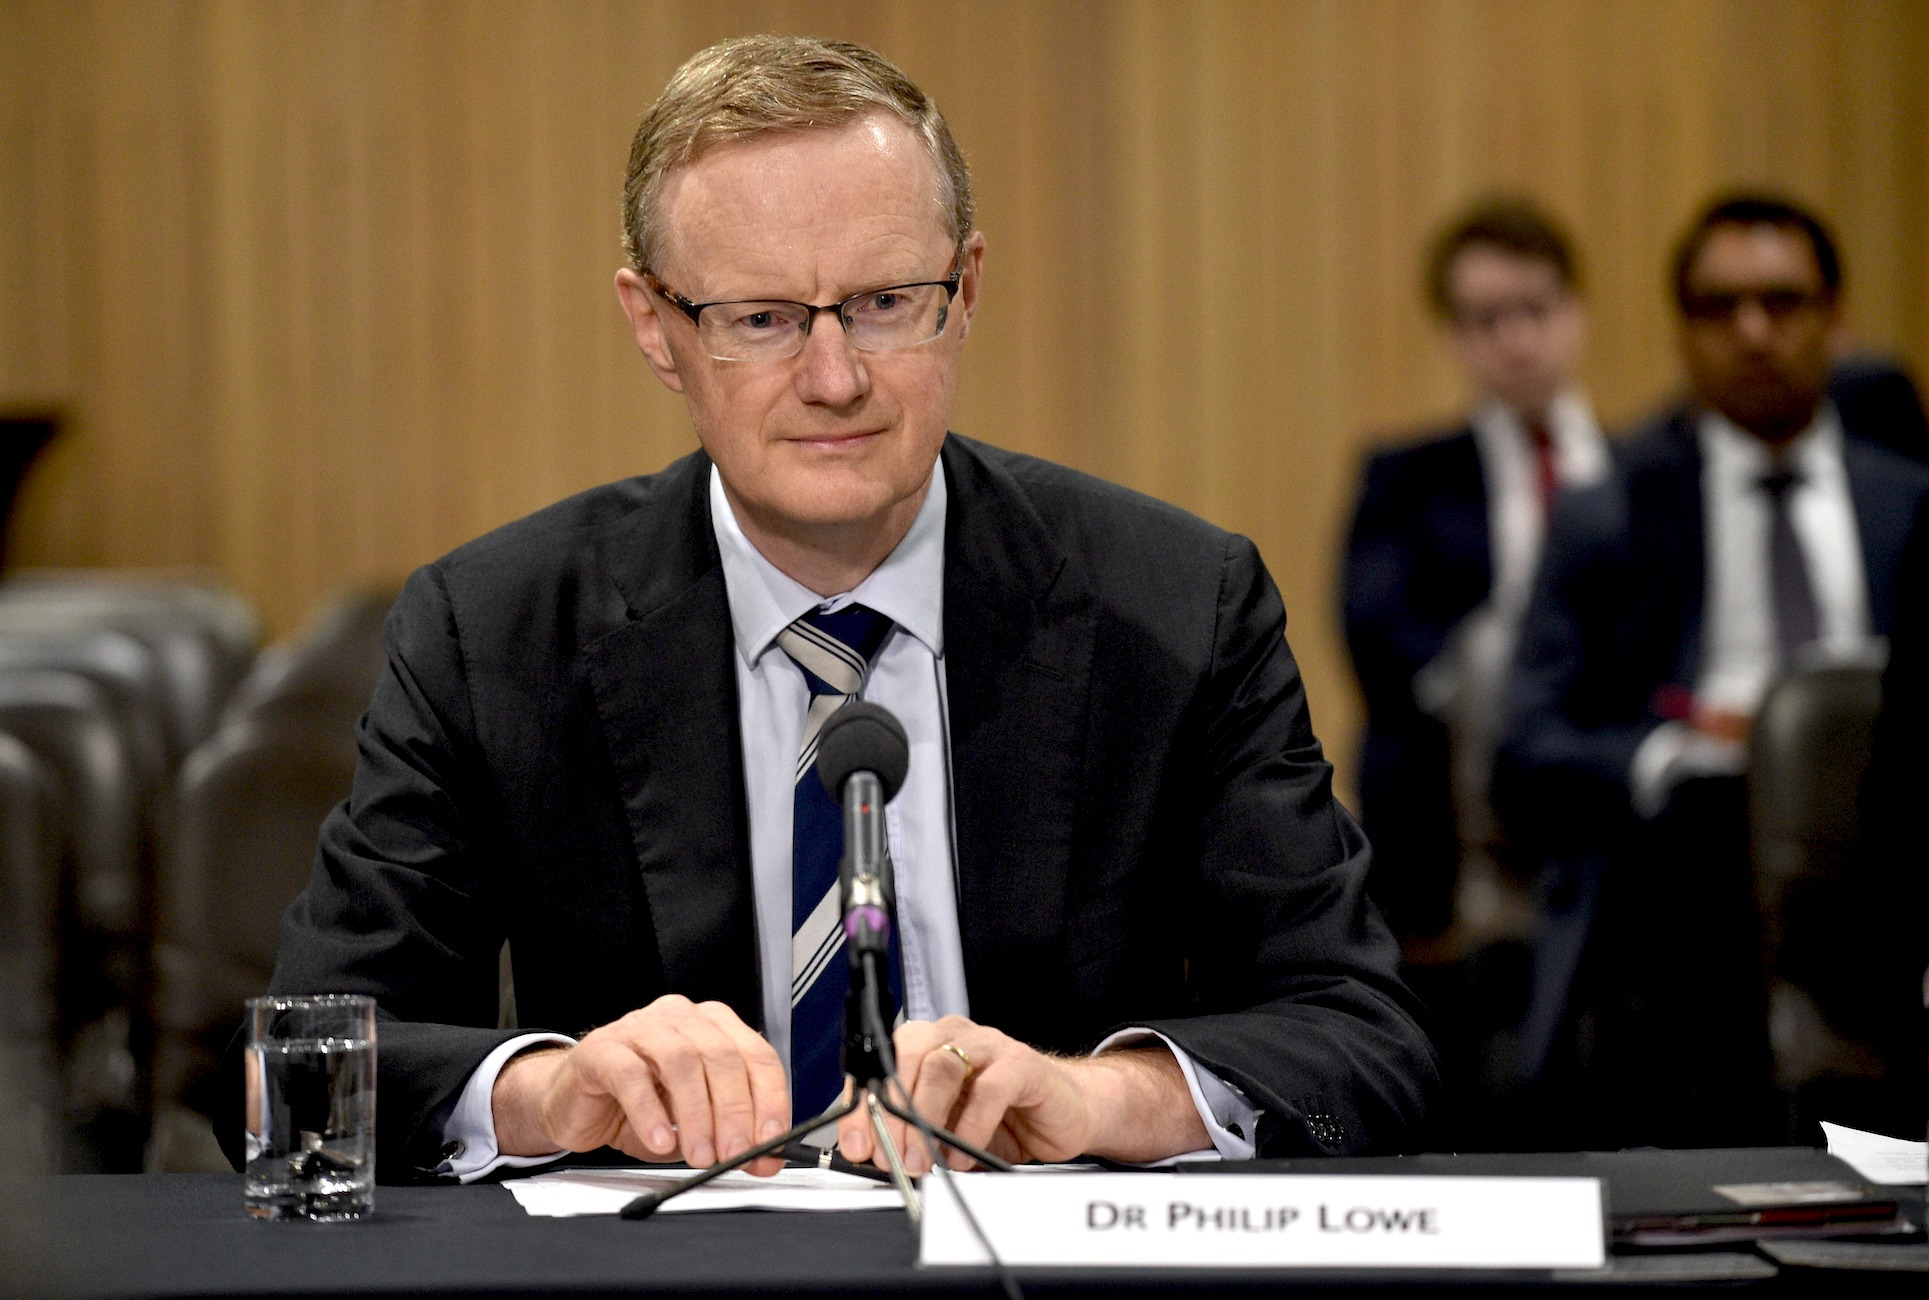 Reserve Bank of Australia Governor Philip Lowe